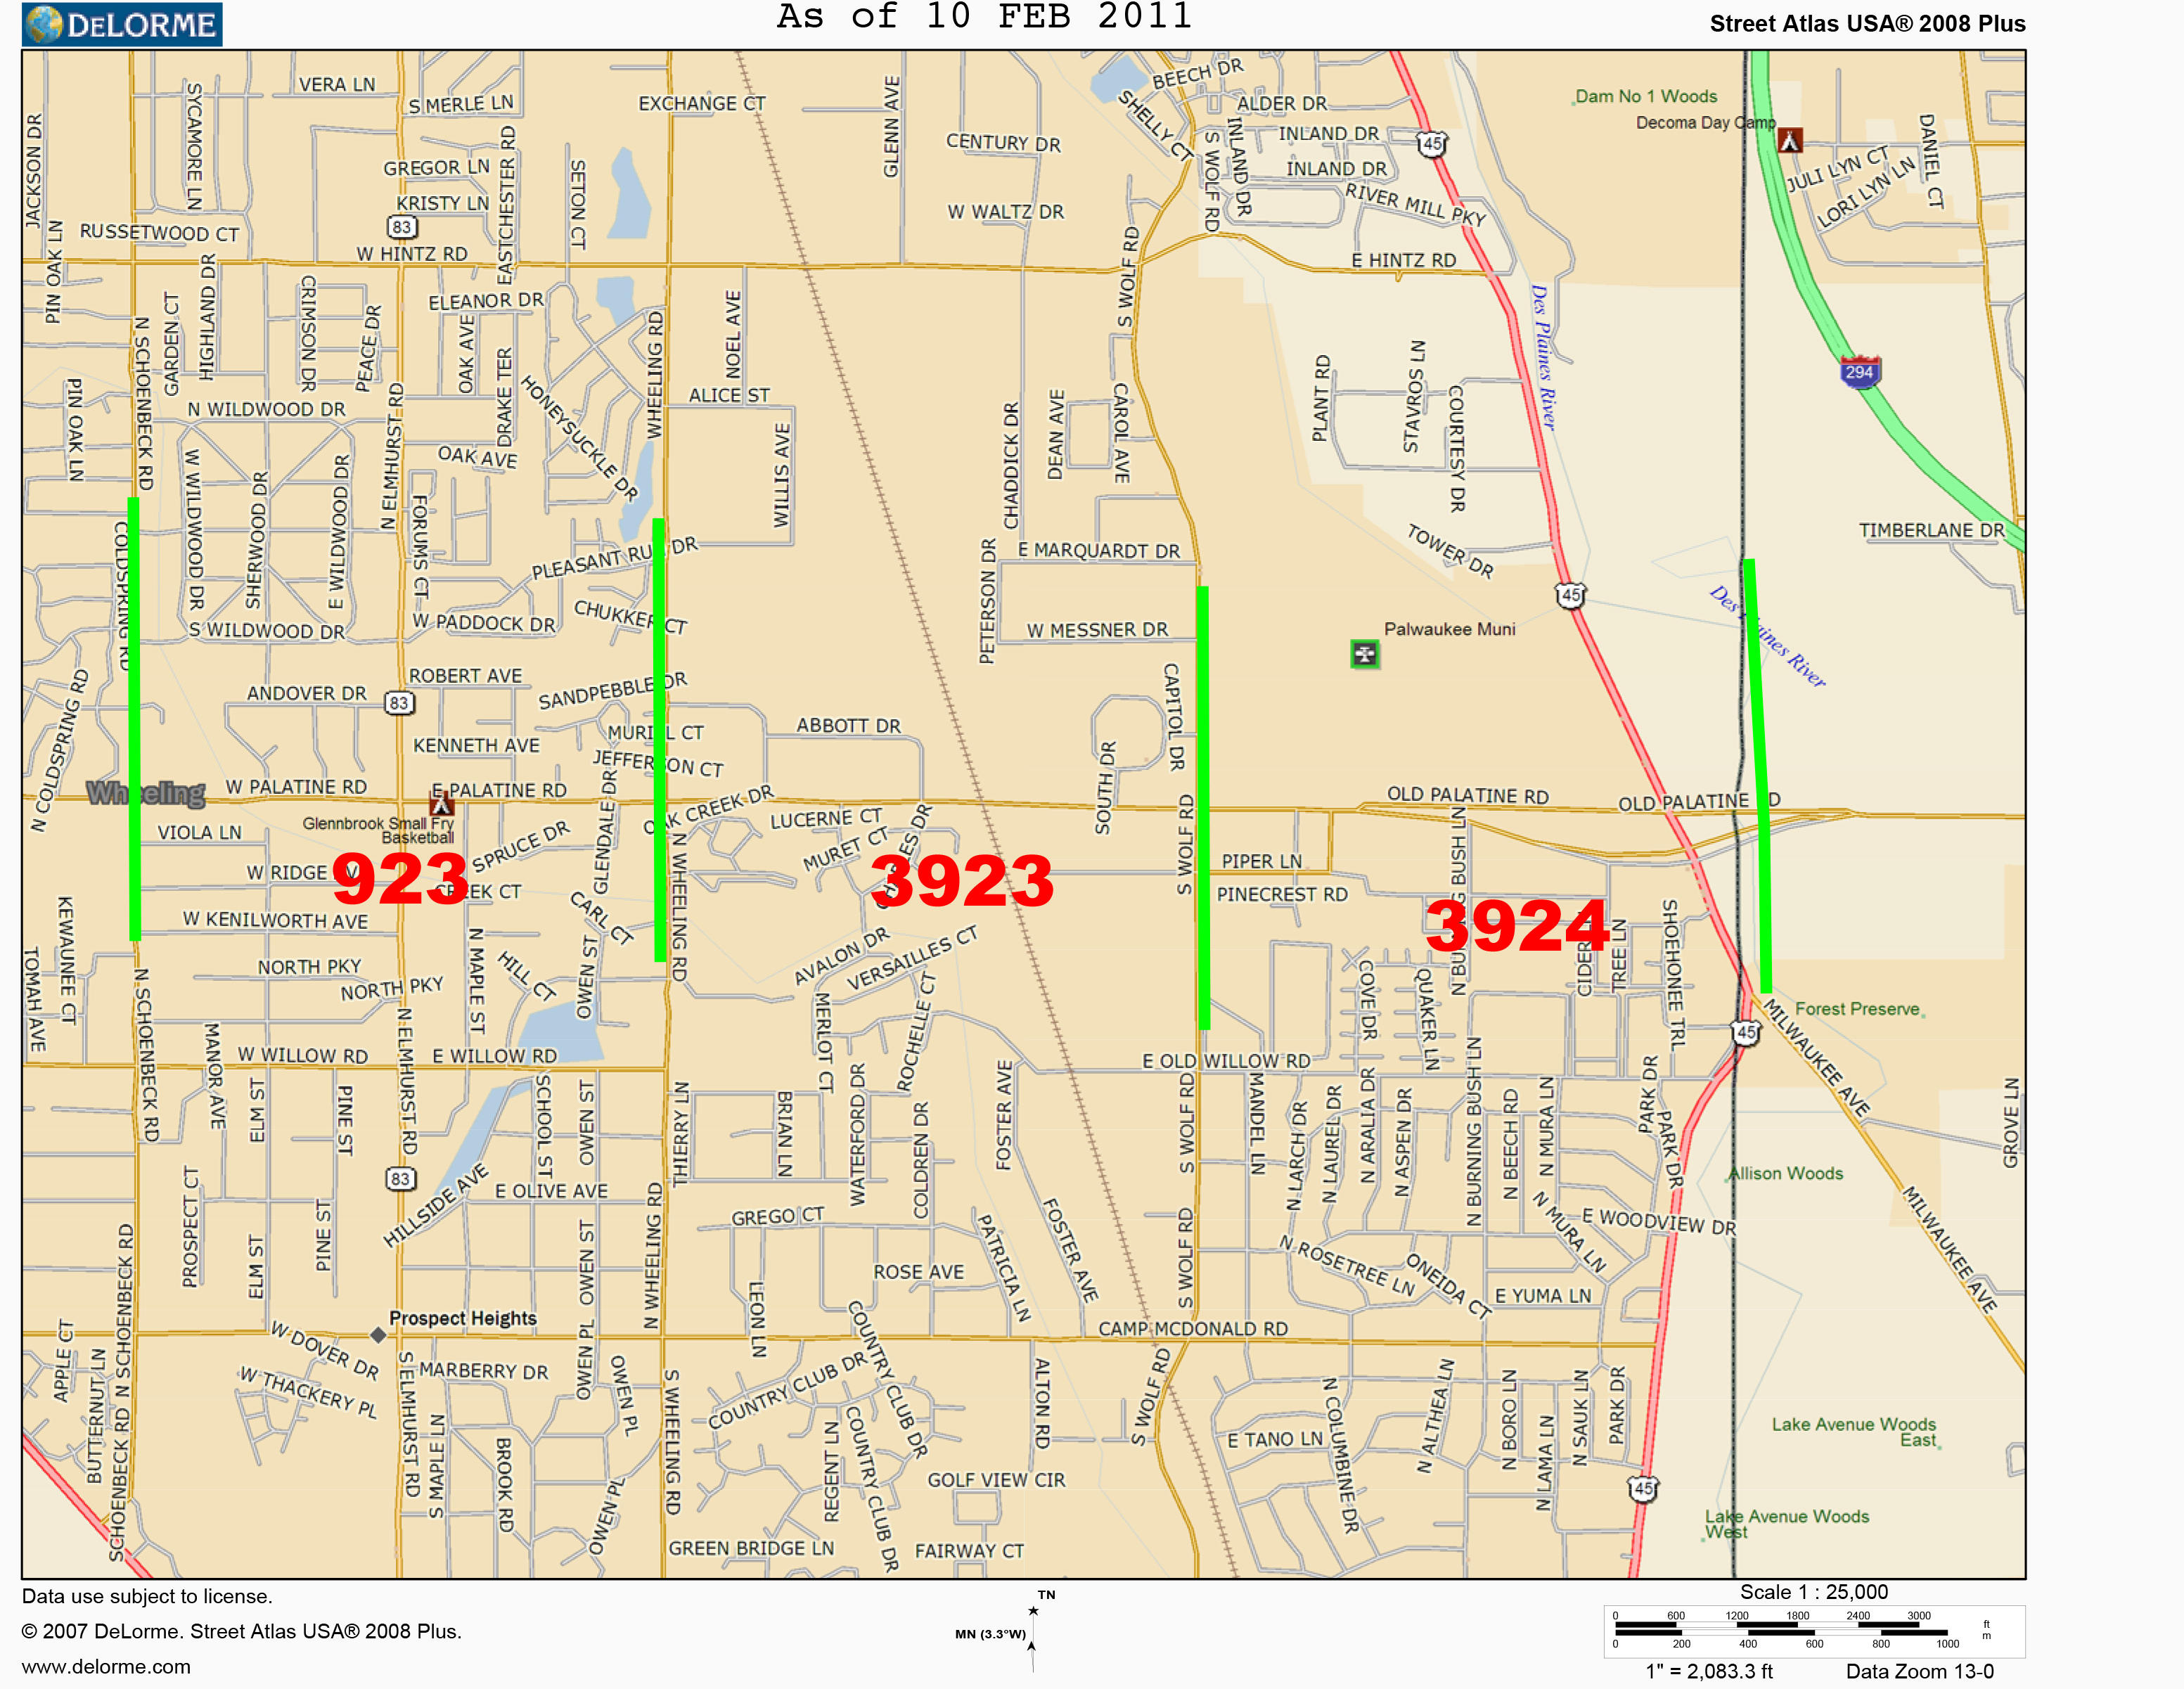 Prospect Heights FPD grid map for Palatine Road